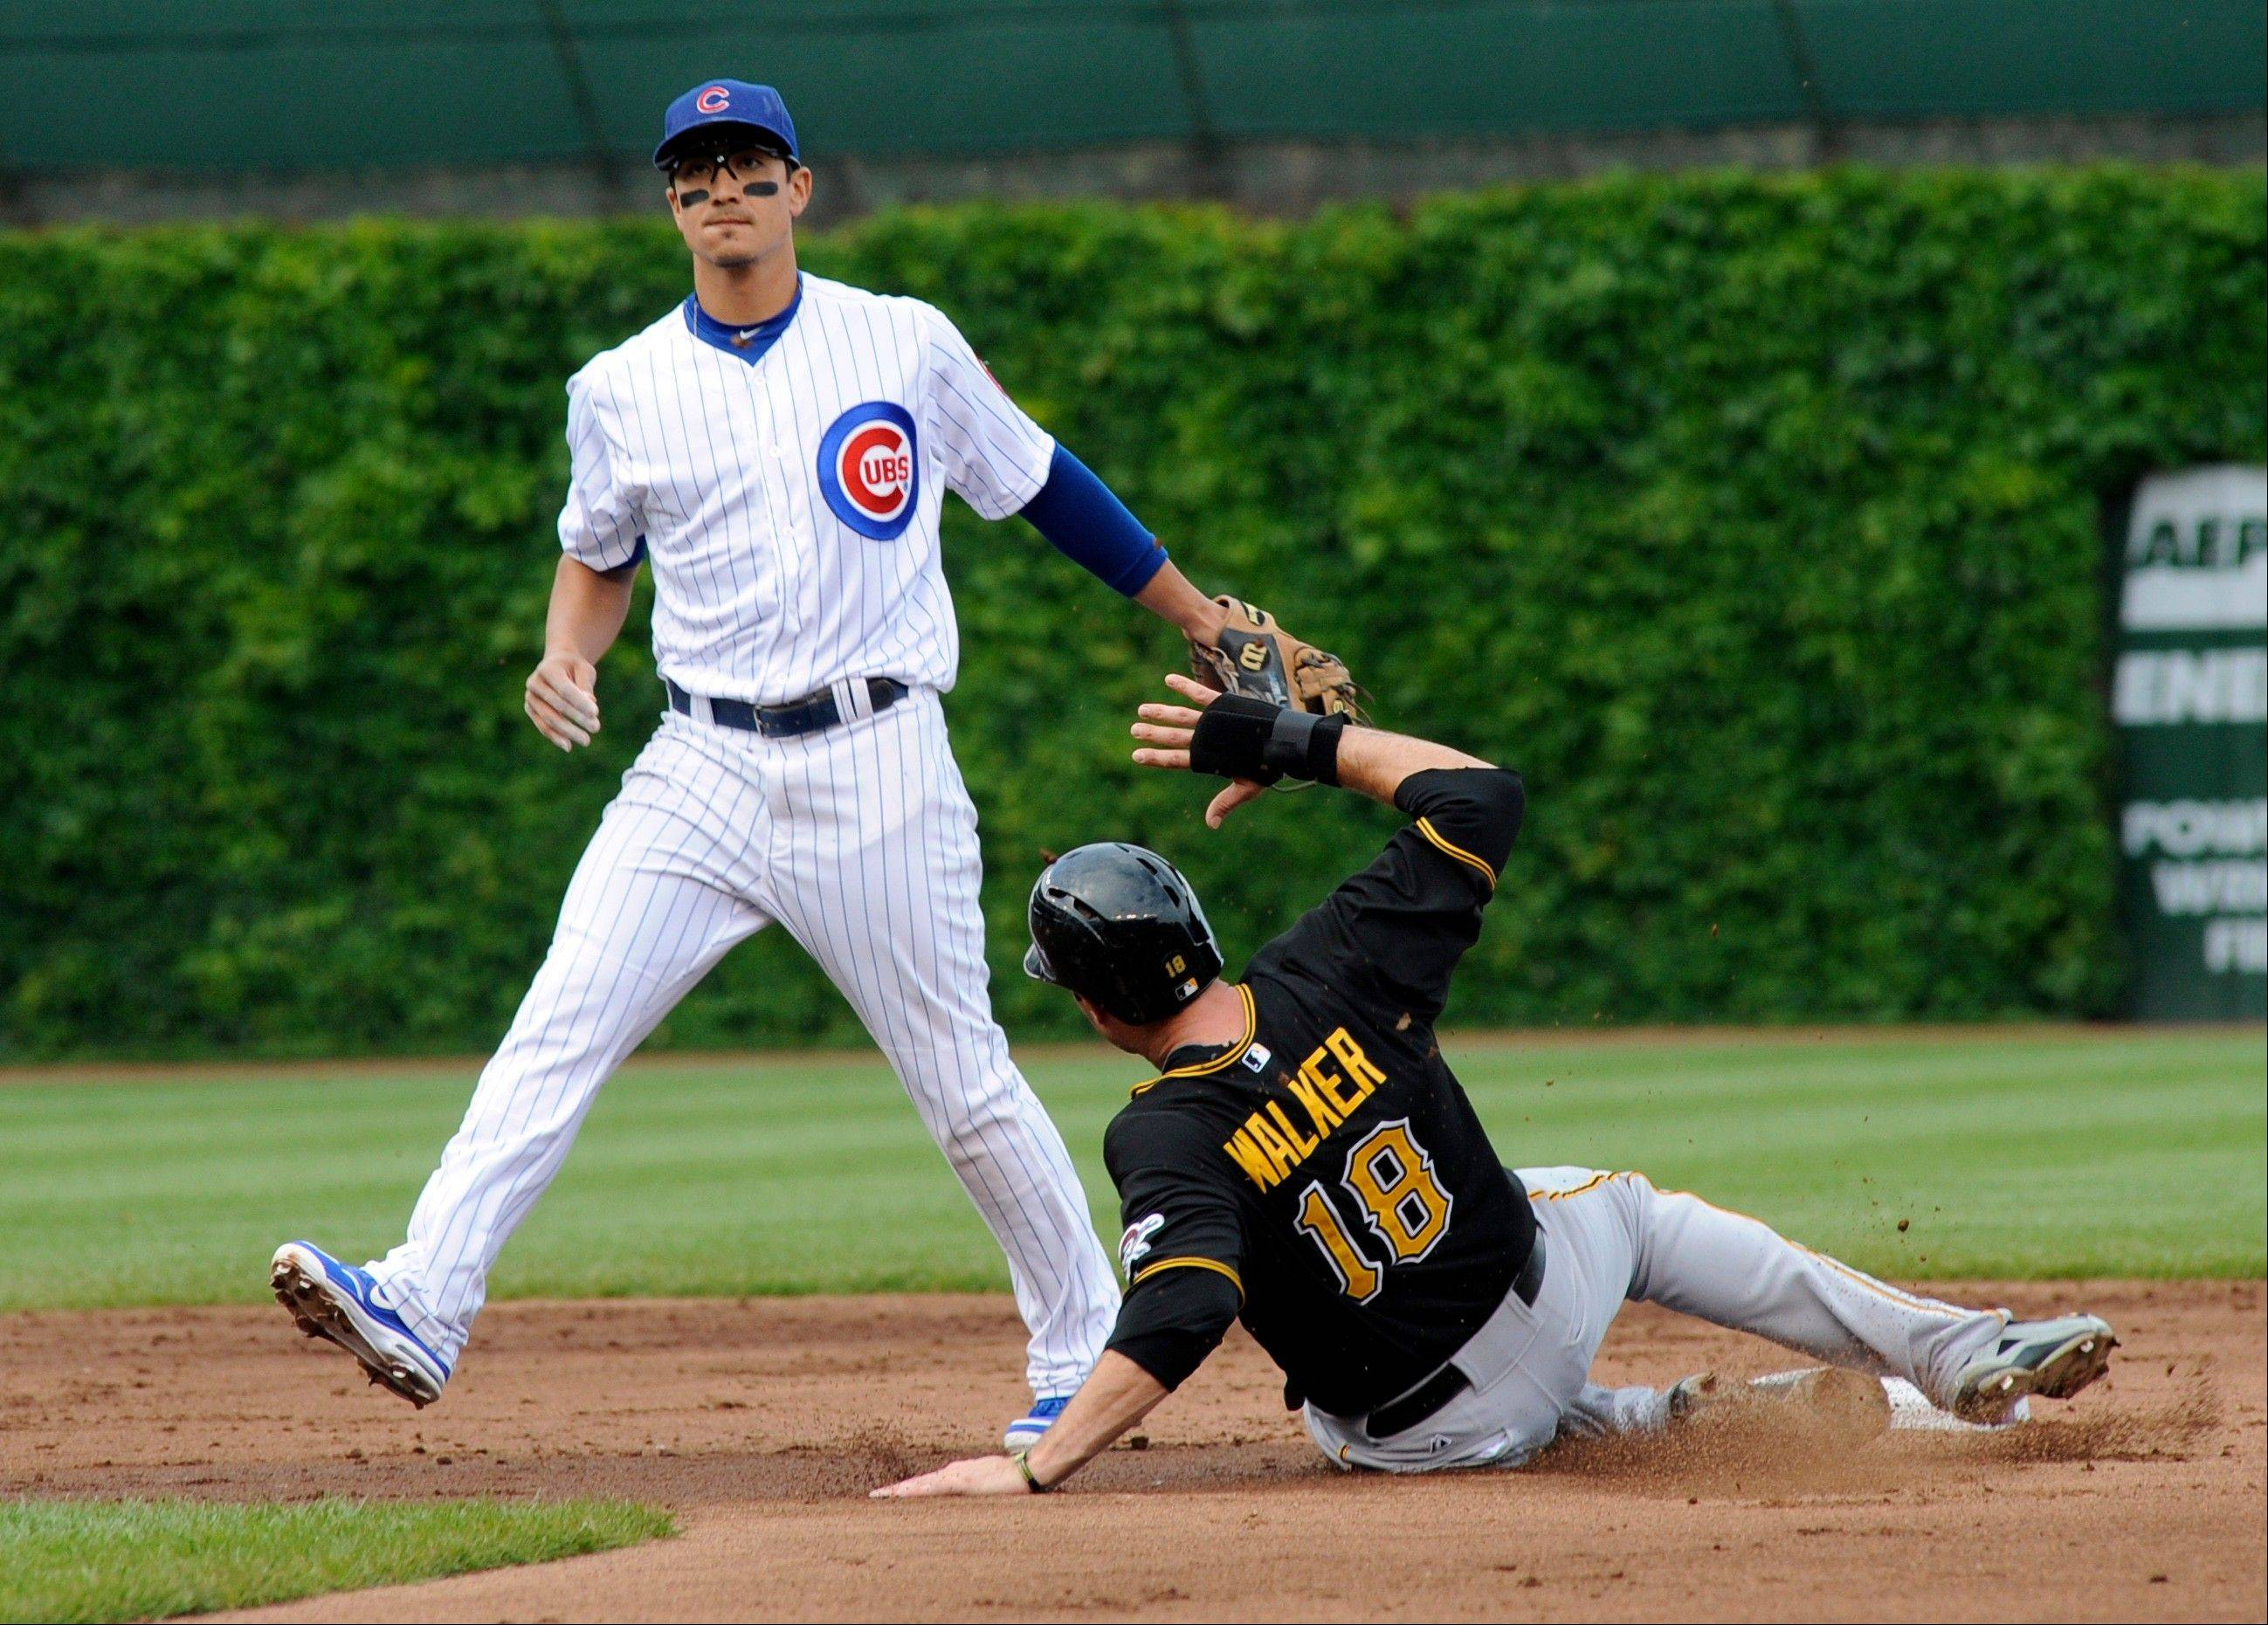 Pittsburgh Pirates' Neil Walker, right, is out at second base after Chicago Cubs' Darwin Barney stepped on the base during a baseball game on Saturday June 8, 2013, in Chicago, Ill.